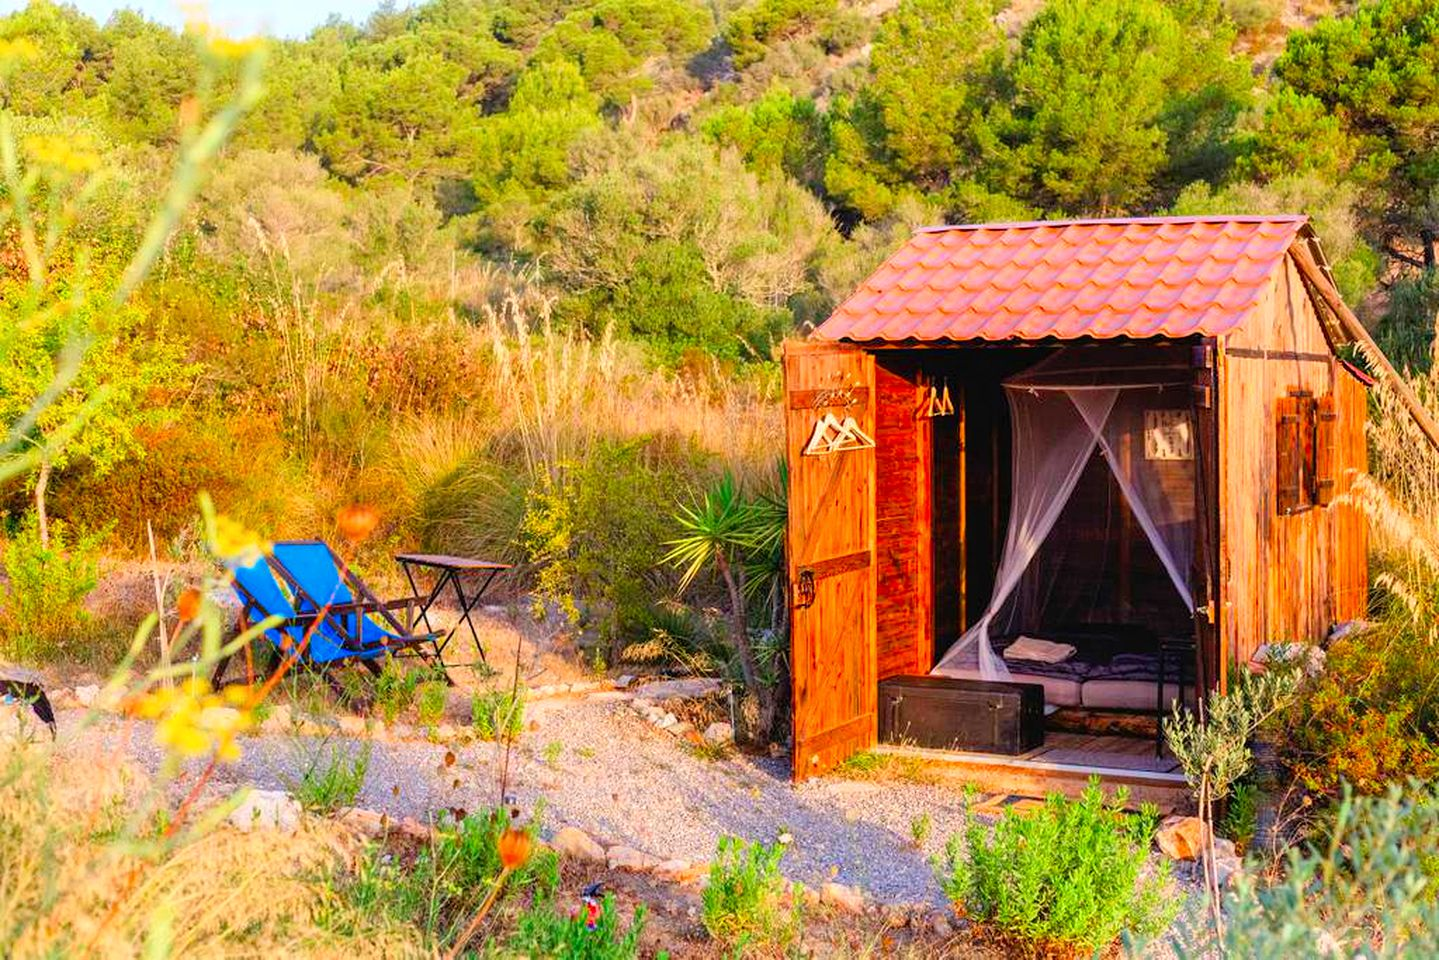 Cabins (Manacor, Balearic Islands, Spain)